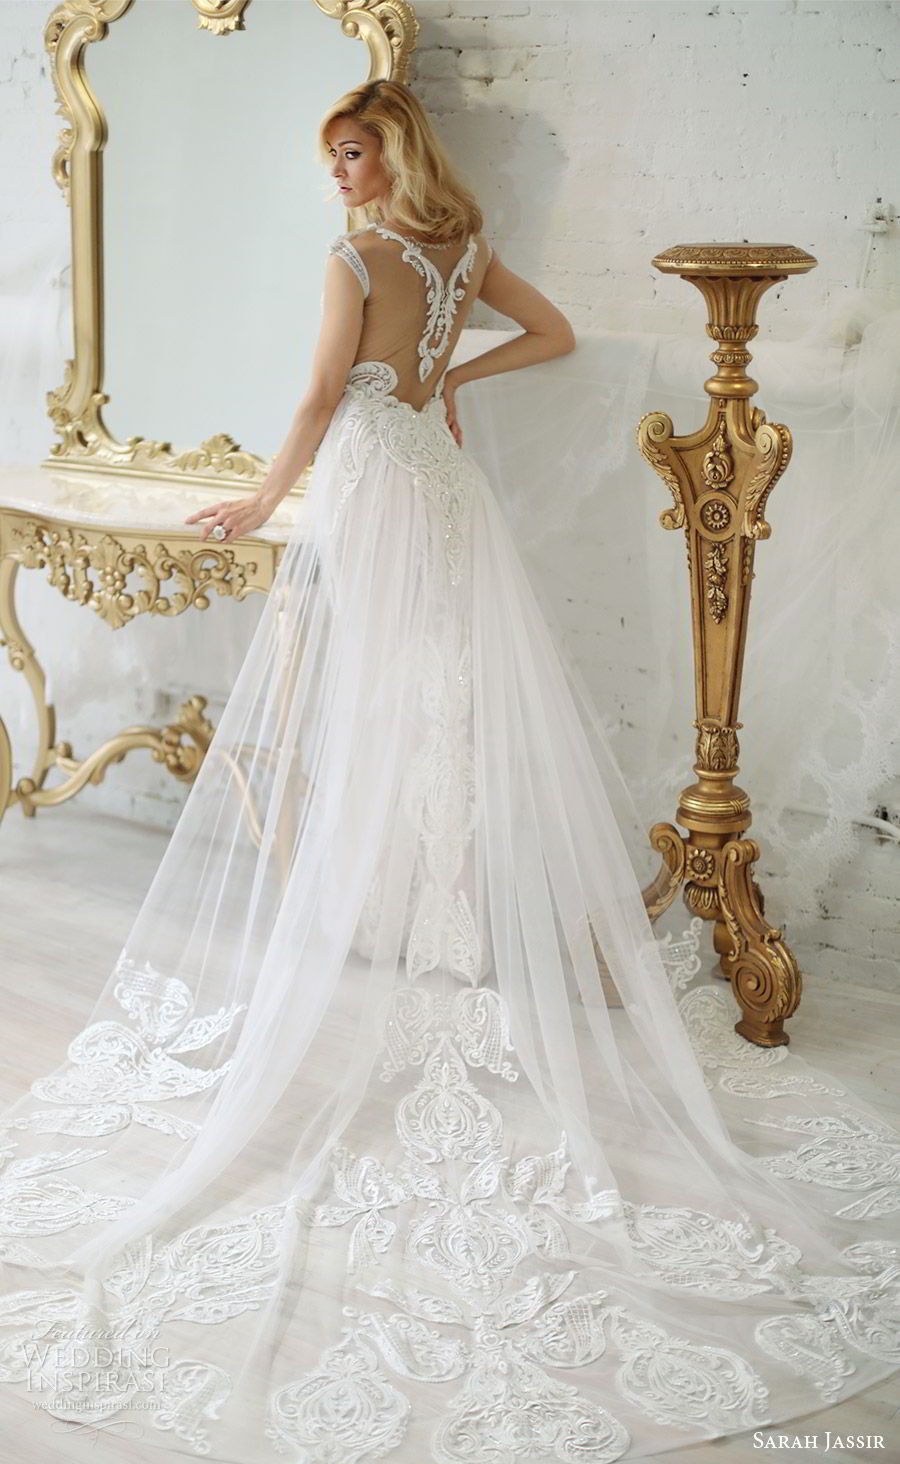 sarah jassir bridal 2018 off shoulder deep v neck illusion jewel neckline cap sleeves sheath lace wedding dress (andi) bv illusion back chapel train elegant